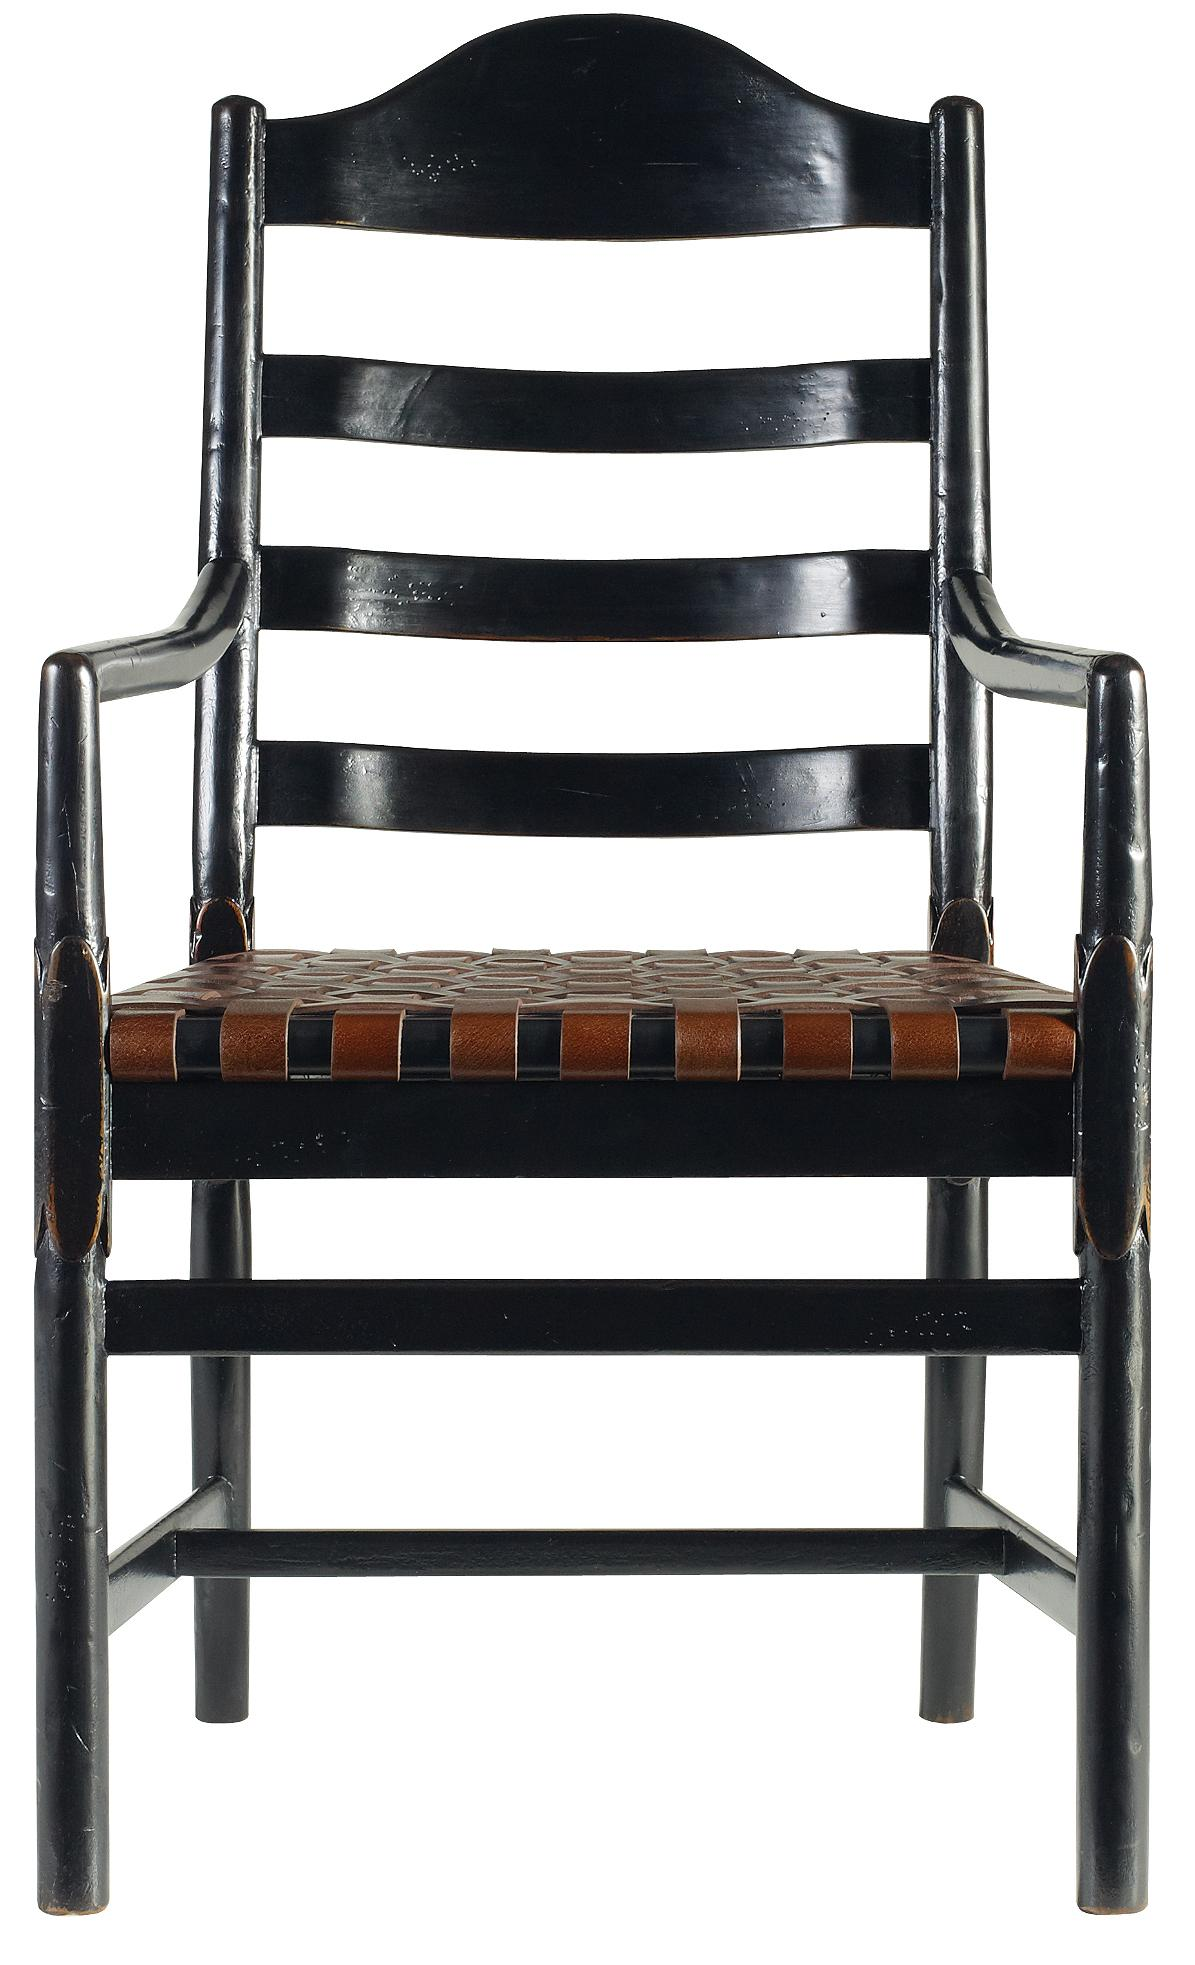 Stanley Furniture The Classic Portfolio Artisan Ladderback Arm Chair - Item Number: 135-81-70